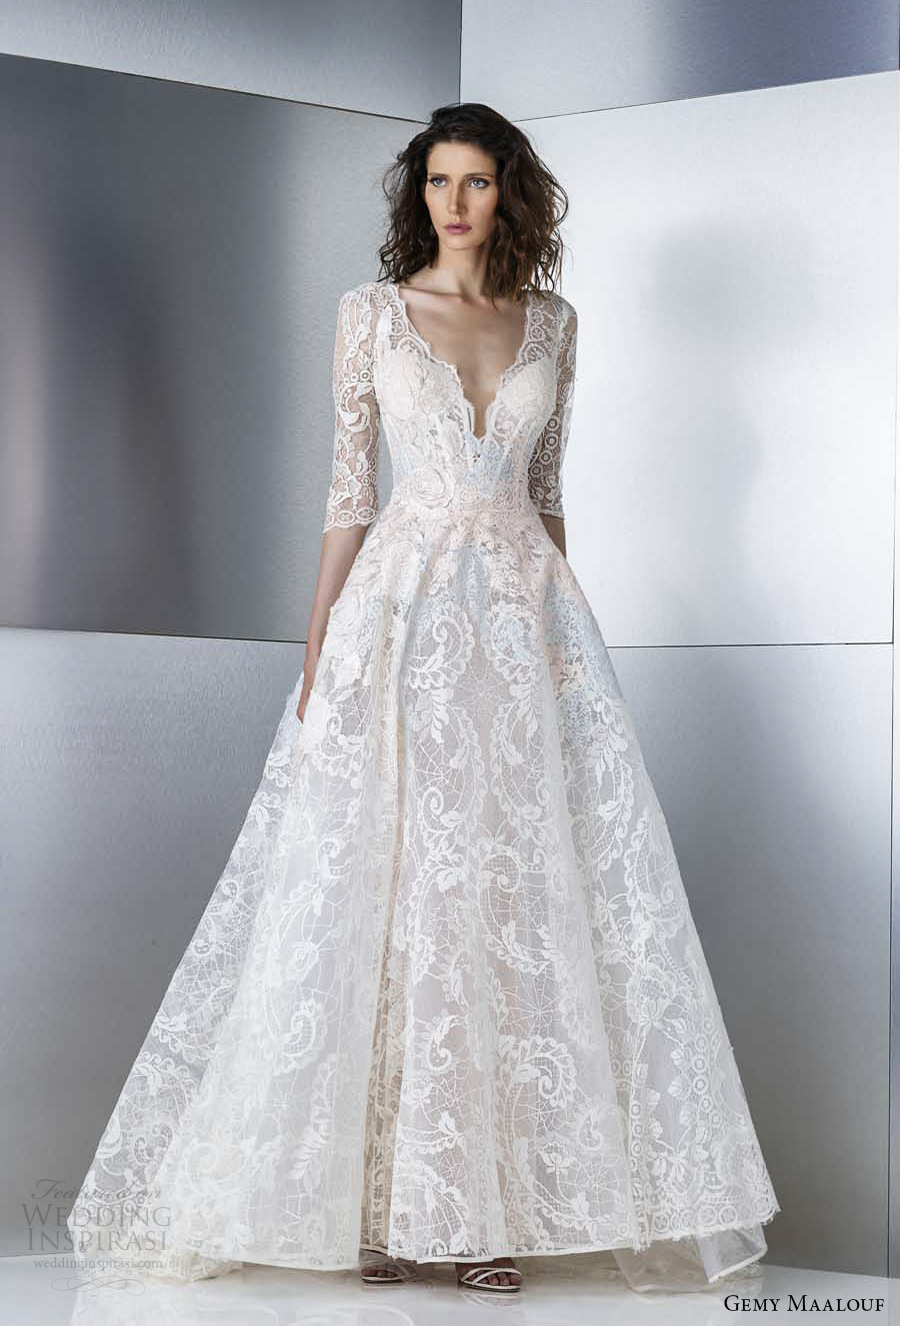 gemy maalouf 2017 bridal three quater sleeves deep plunging v neck full embellishment lace romantic elegant a  line wedding dress open v back sweep train (w17 4787) fv